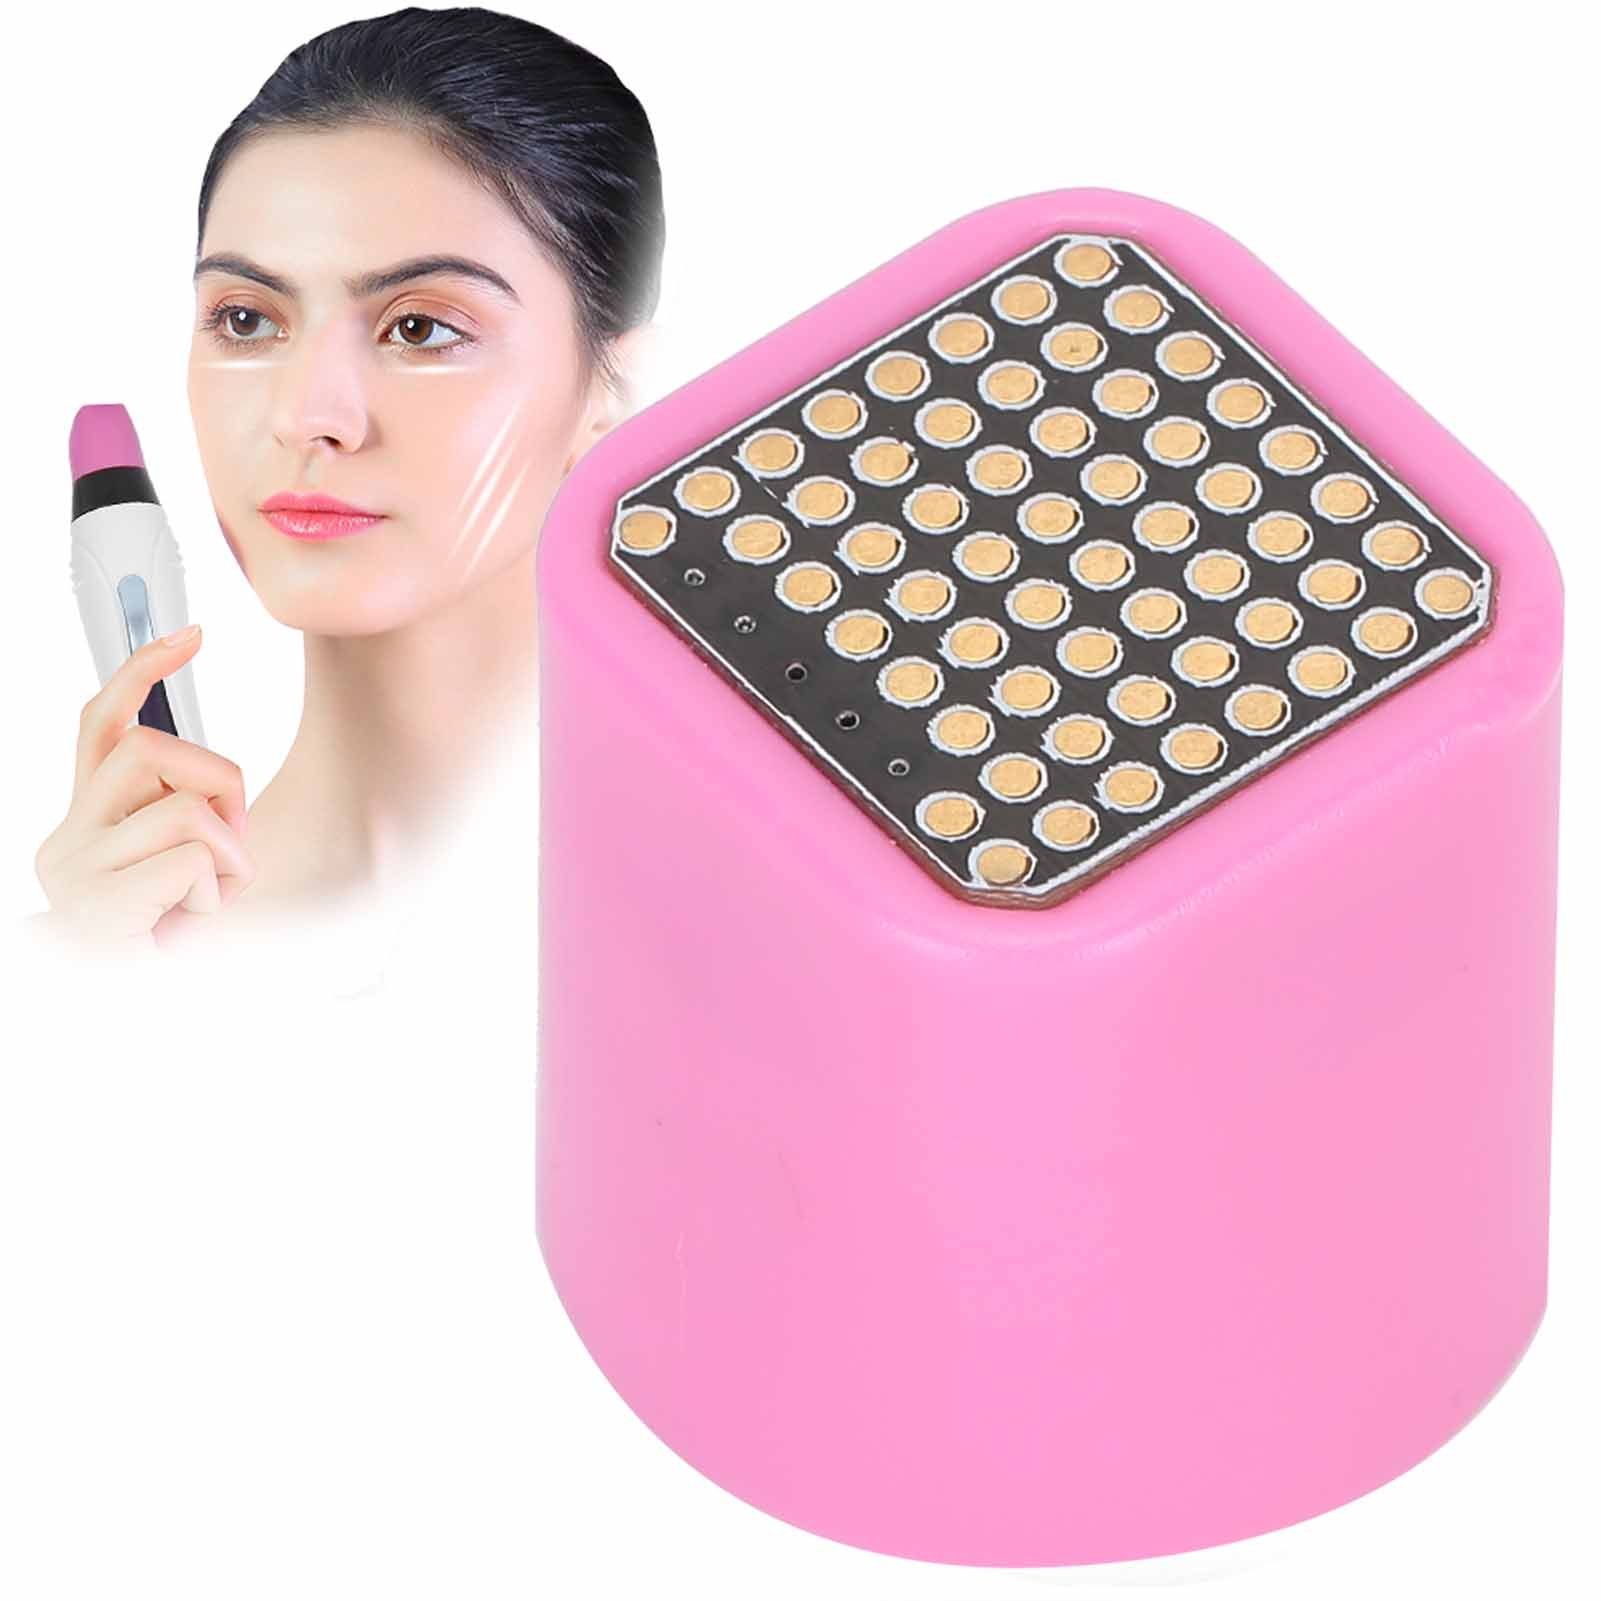 RF Face Firming Lifting Beauty Instrument Facial Probe Beauty Salon Tool Accessories Skin Care Tool